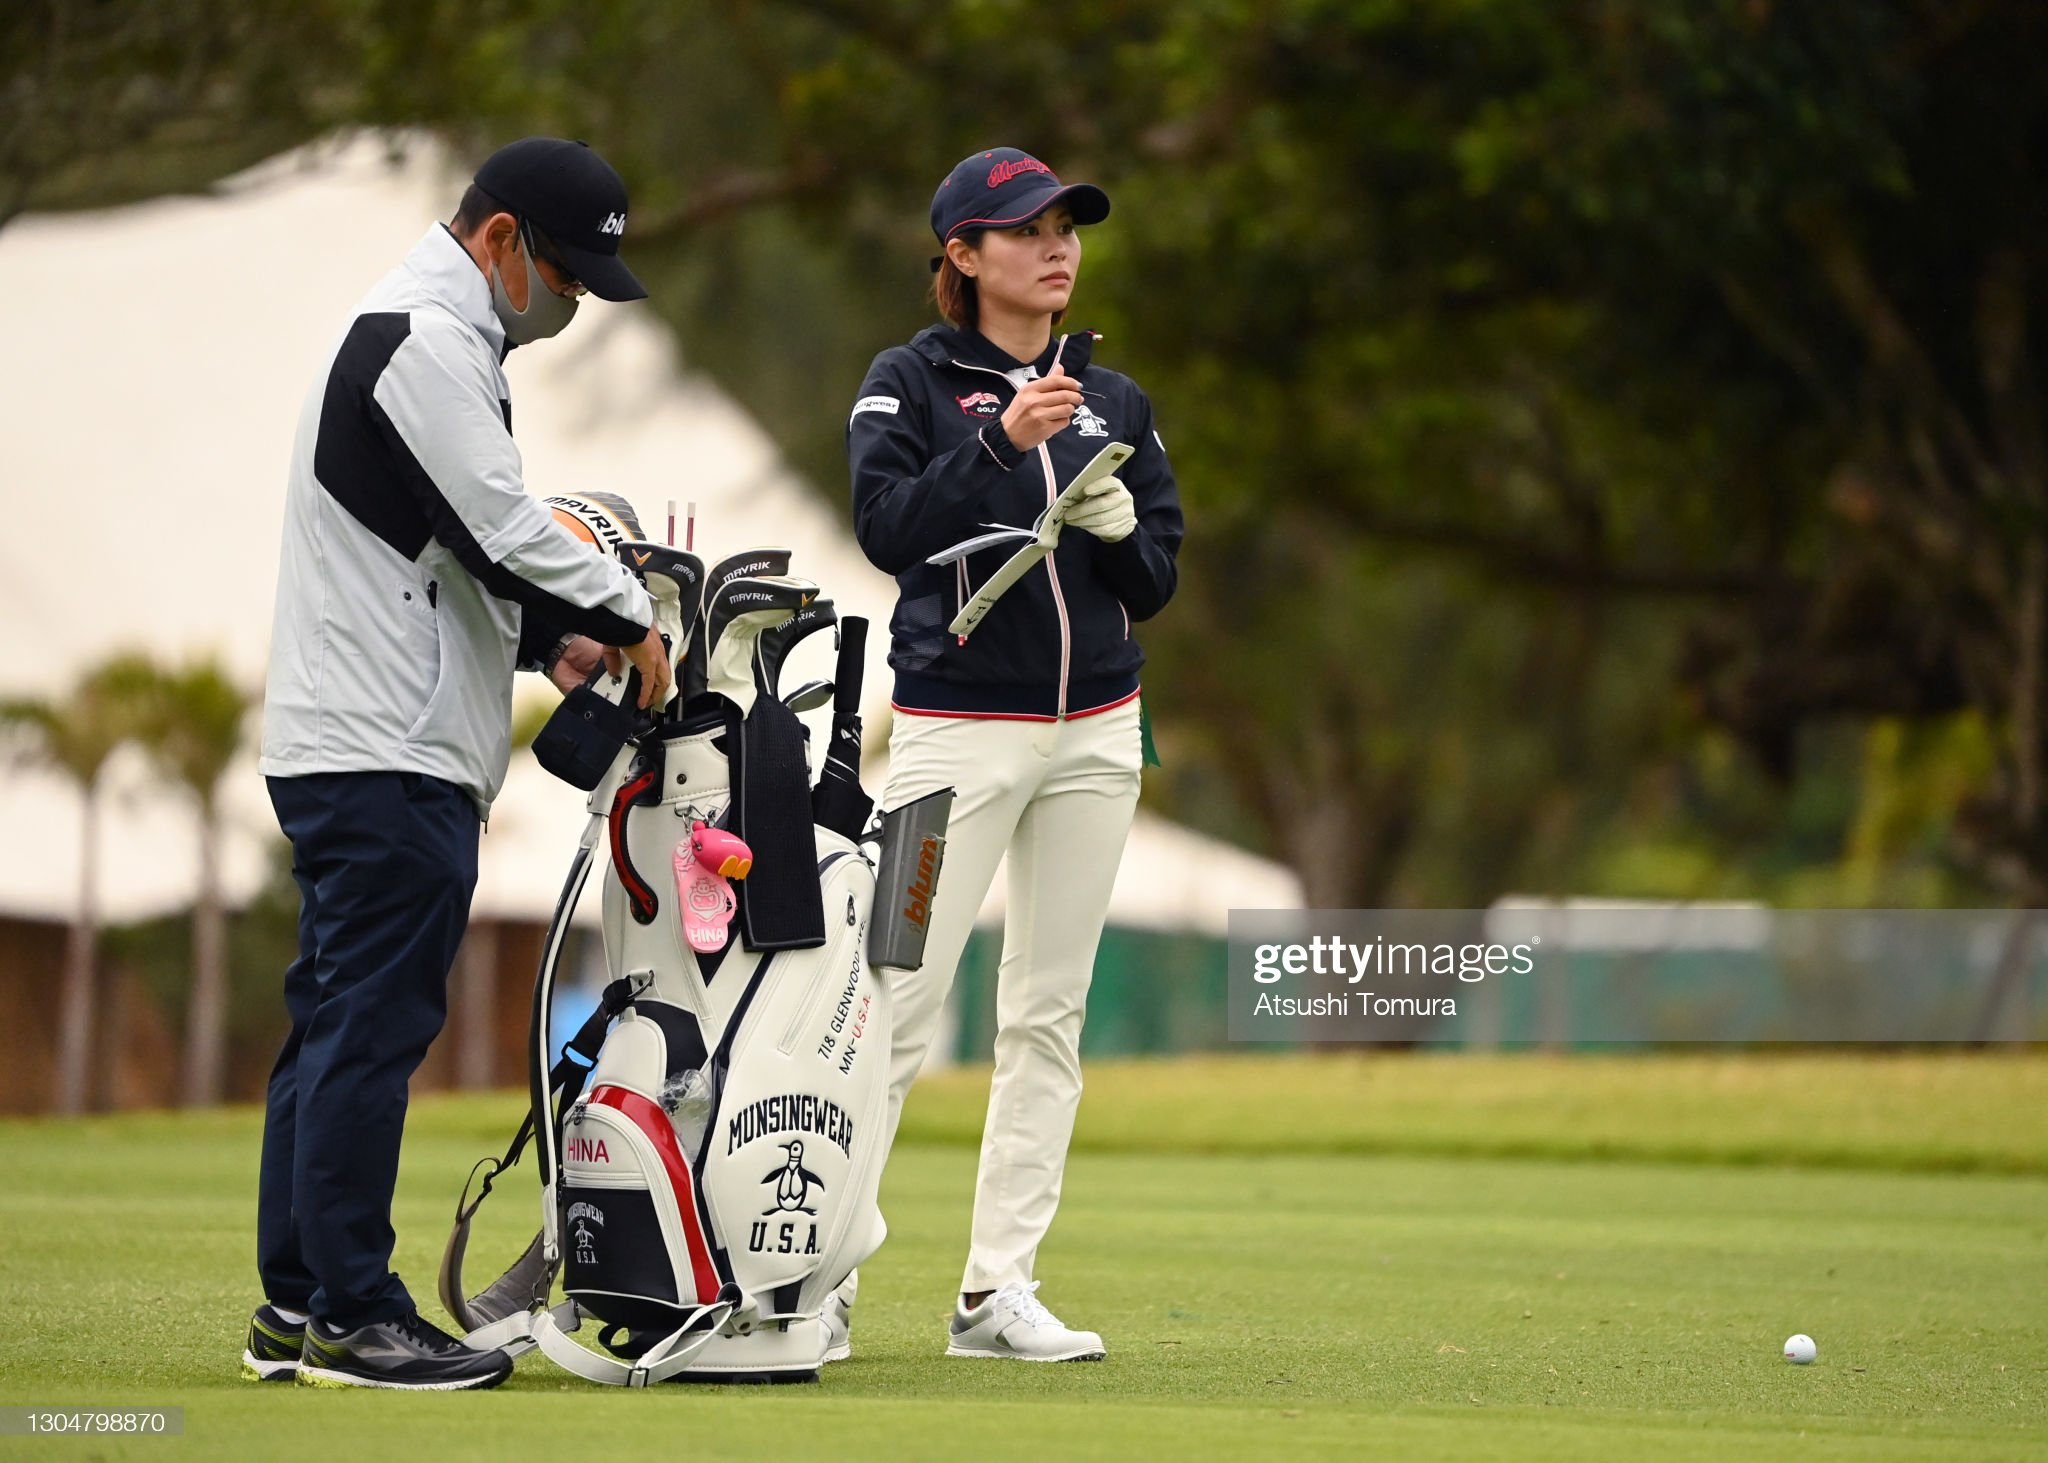 https://media.gettyimages.com/photos/hina-arakaki-of-japan-is-seen-on-the-1st-hole-during-the-practice-picture-id1304798870?s=2048x2048